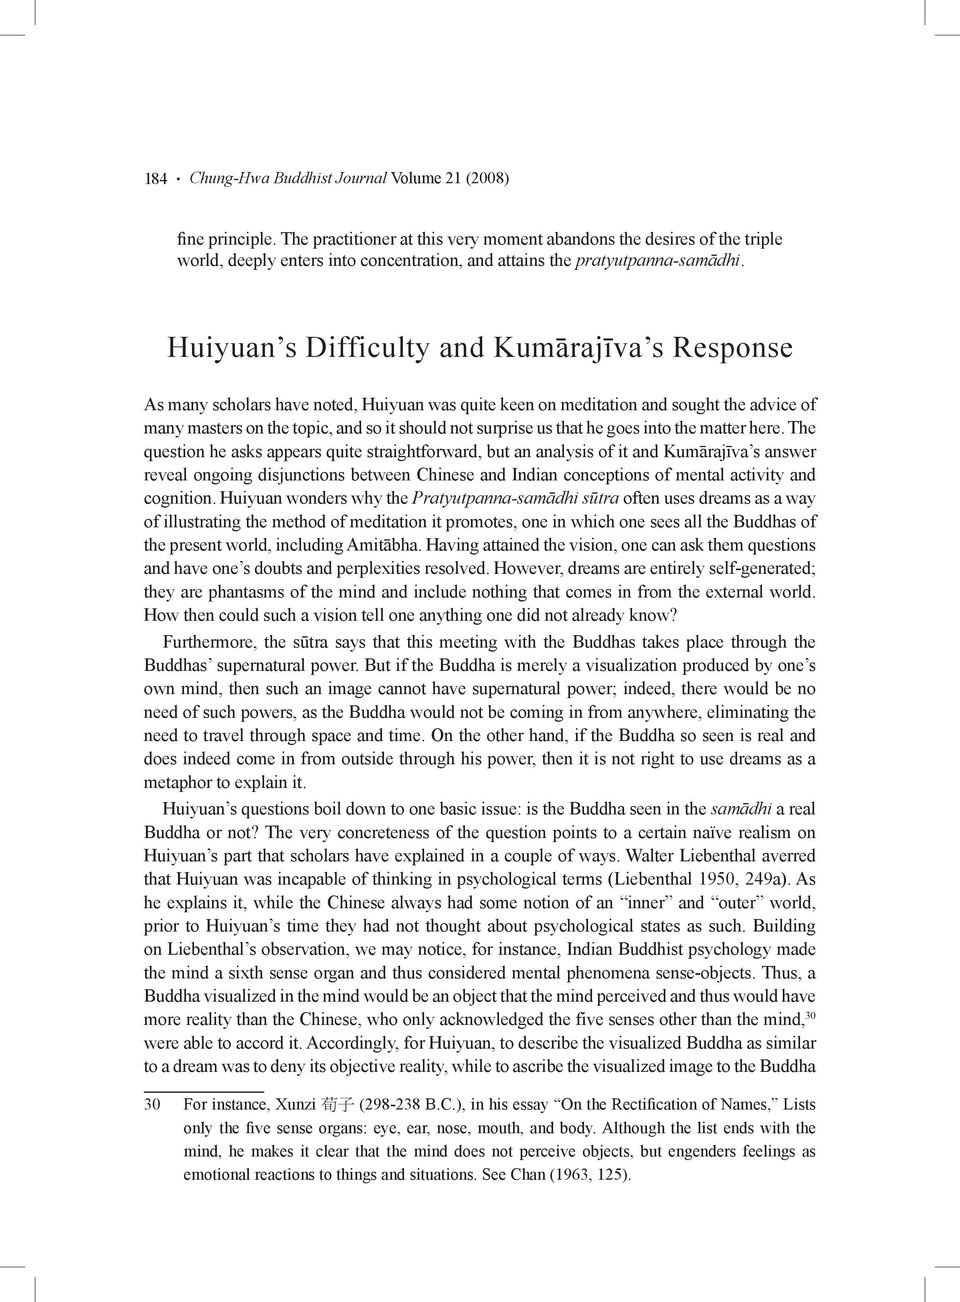 Huiyuan s Difficulty and Kumārajīva s Response As many scholars have noted, Huiyuan was quite keen on meditation and sought the advice of many masters on the topic, and so it should not surprise us